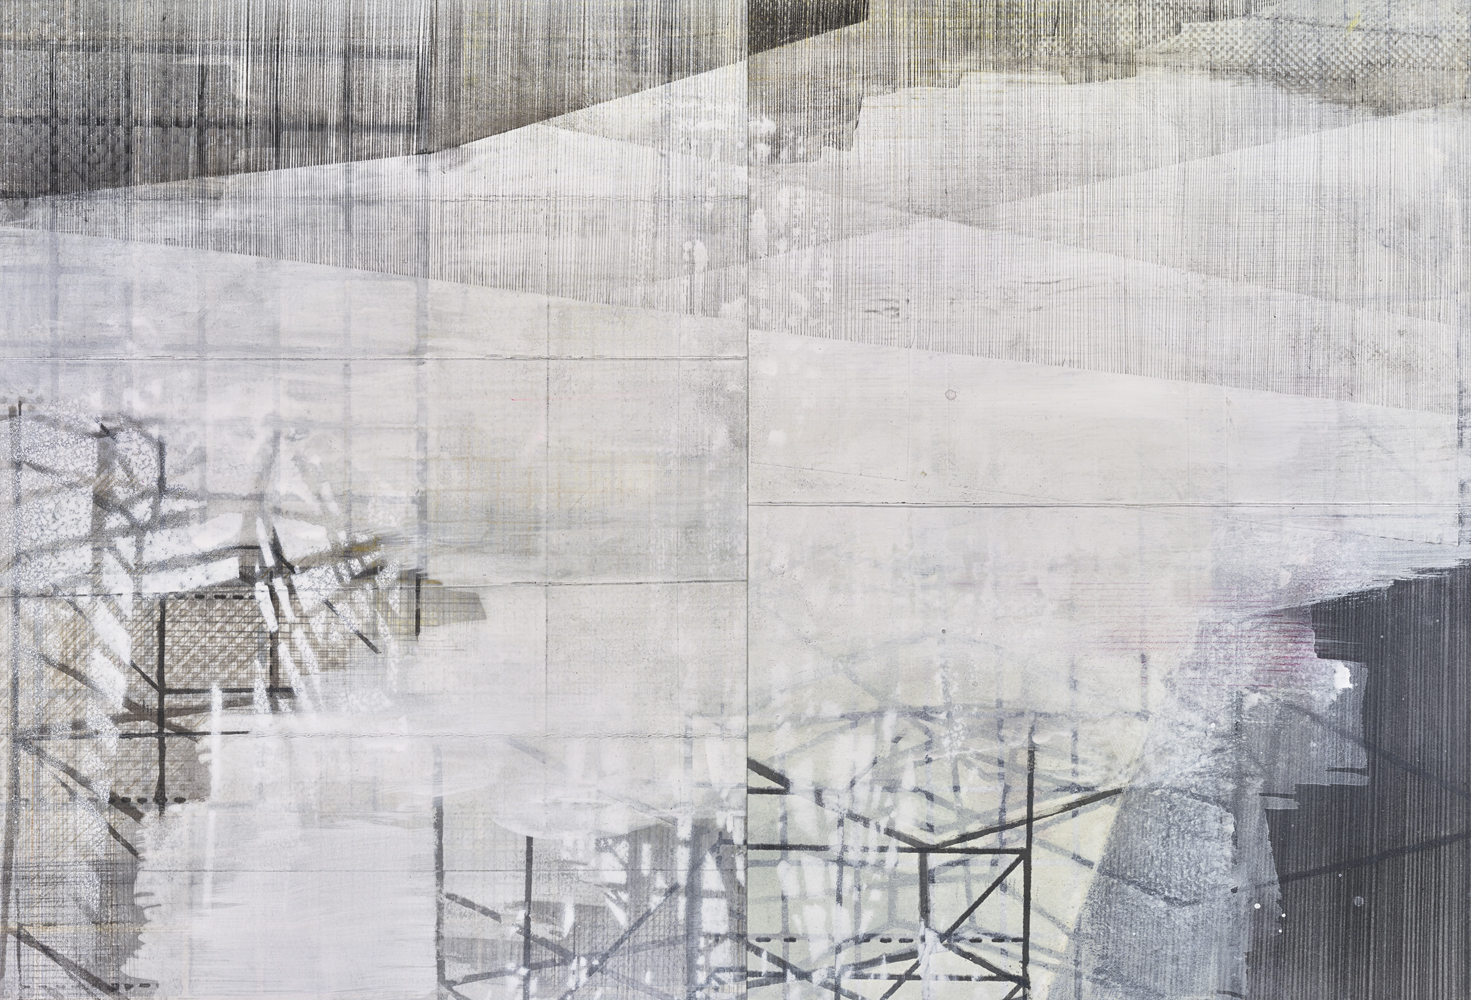 Amanda Knowles, Structure to hold up the sky I, 2017, screen print, graphite + acrylic on paper, 14.75 x 21.75 inches, framed, $1200.